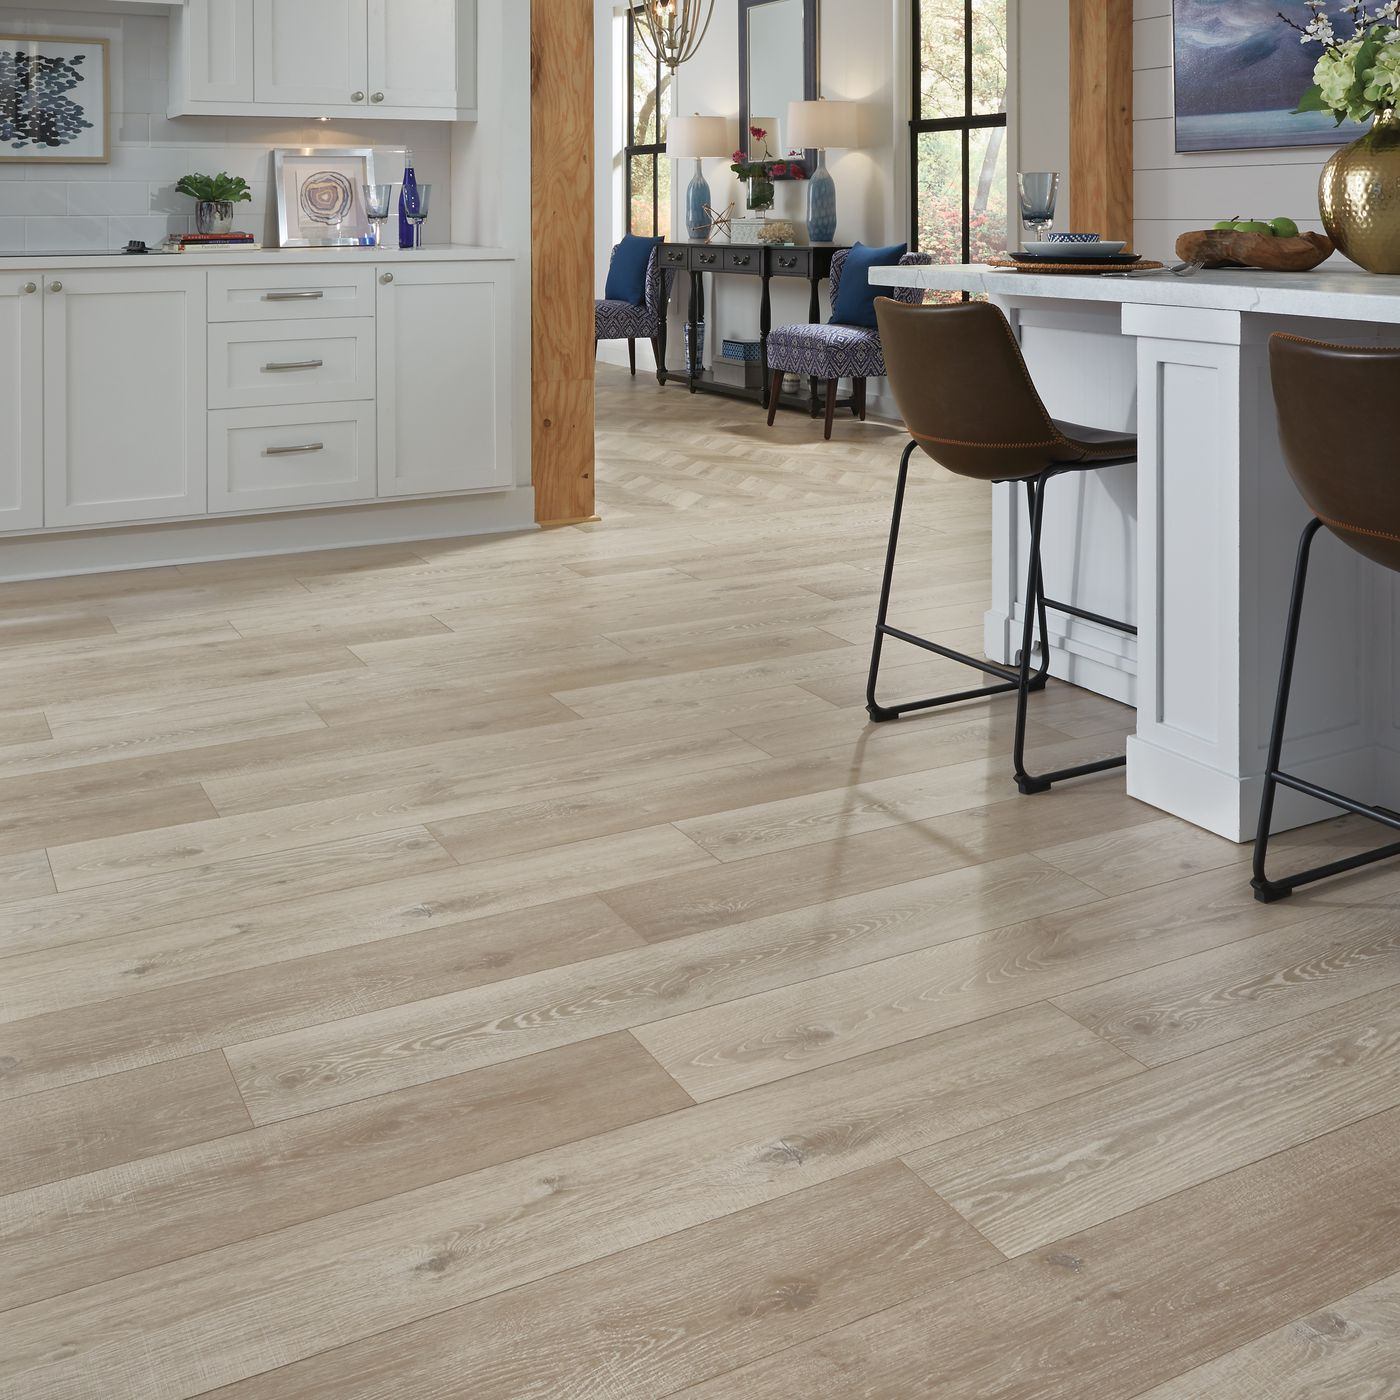 Laminate Flooring Guide What to Know Before You Install   This ...